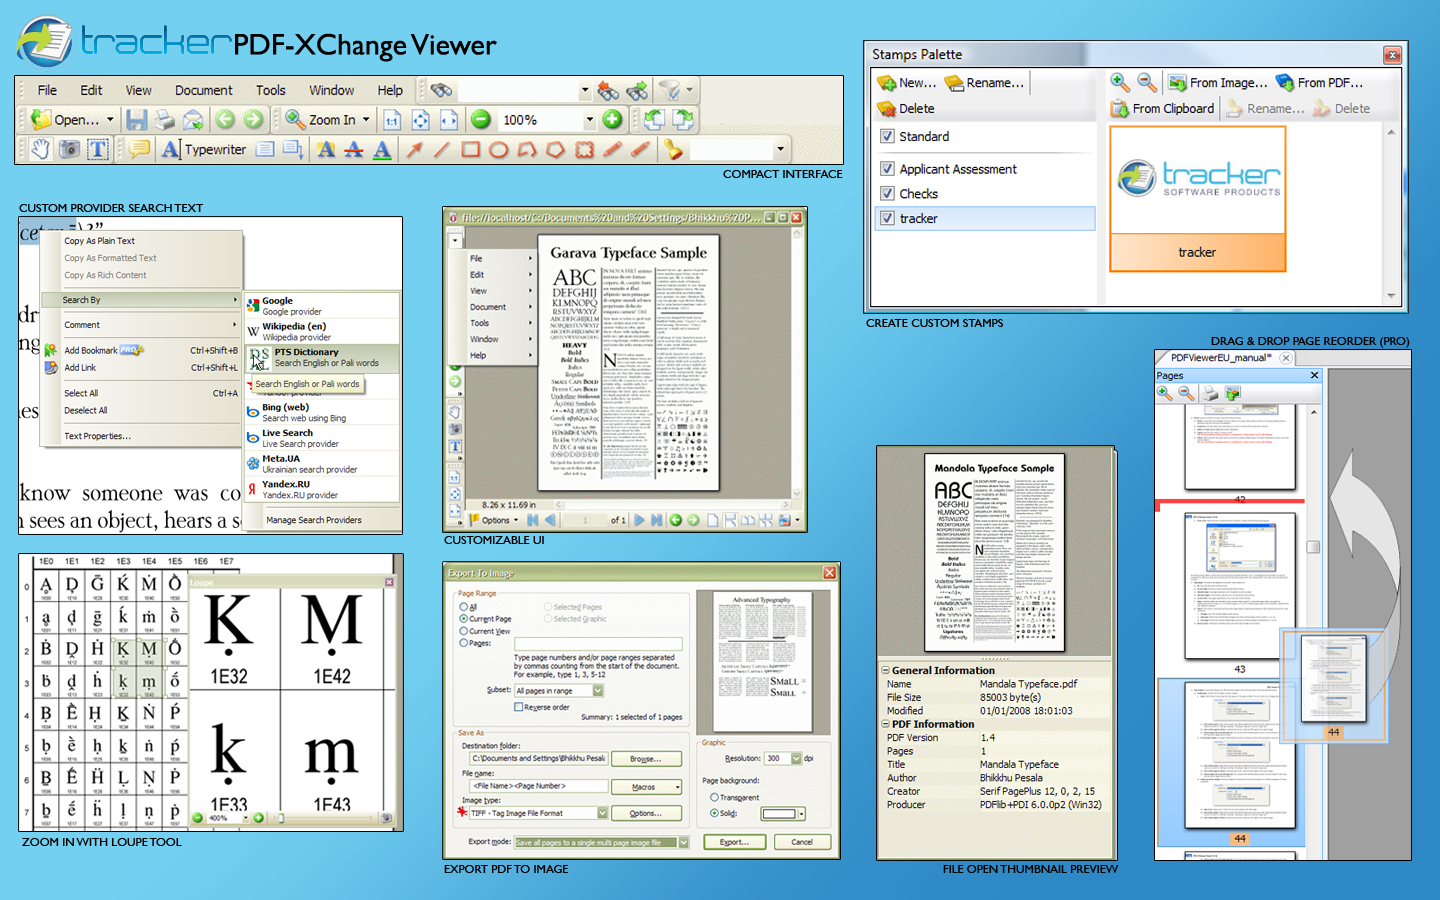 PDF-XChange Viewer has a rich feature set compared to other PDF viewers